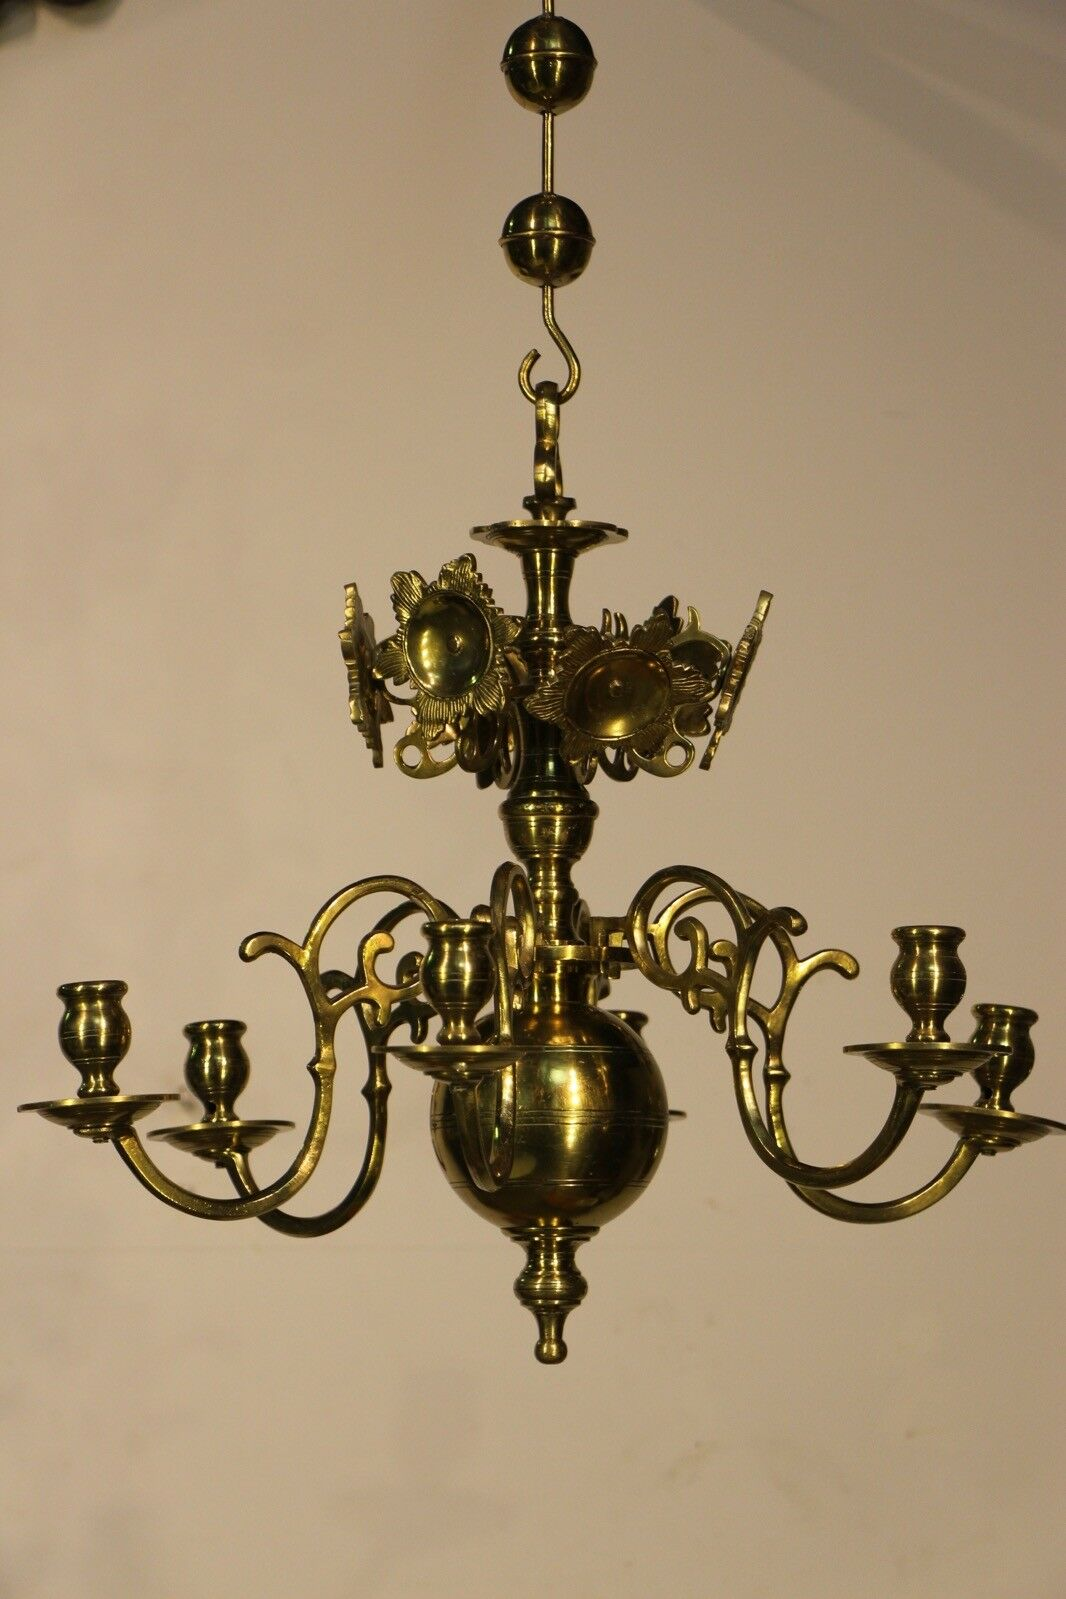 Antique vintage brass Dutch chandelier five arms ornate dragon head scrolls 1920 9